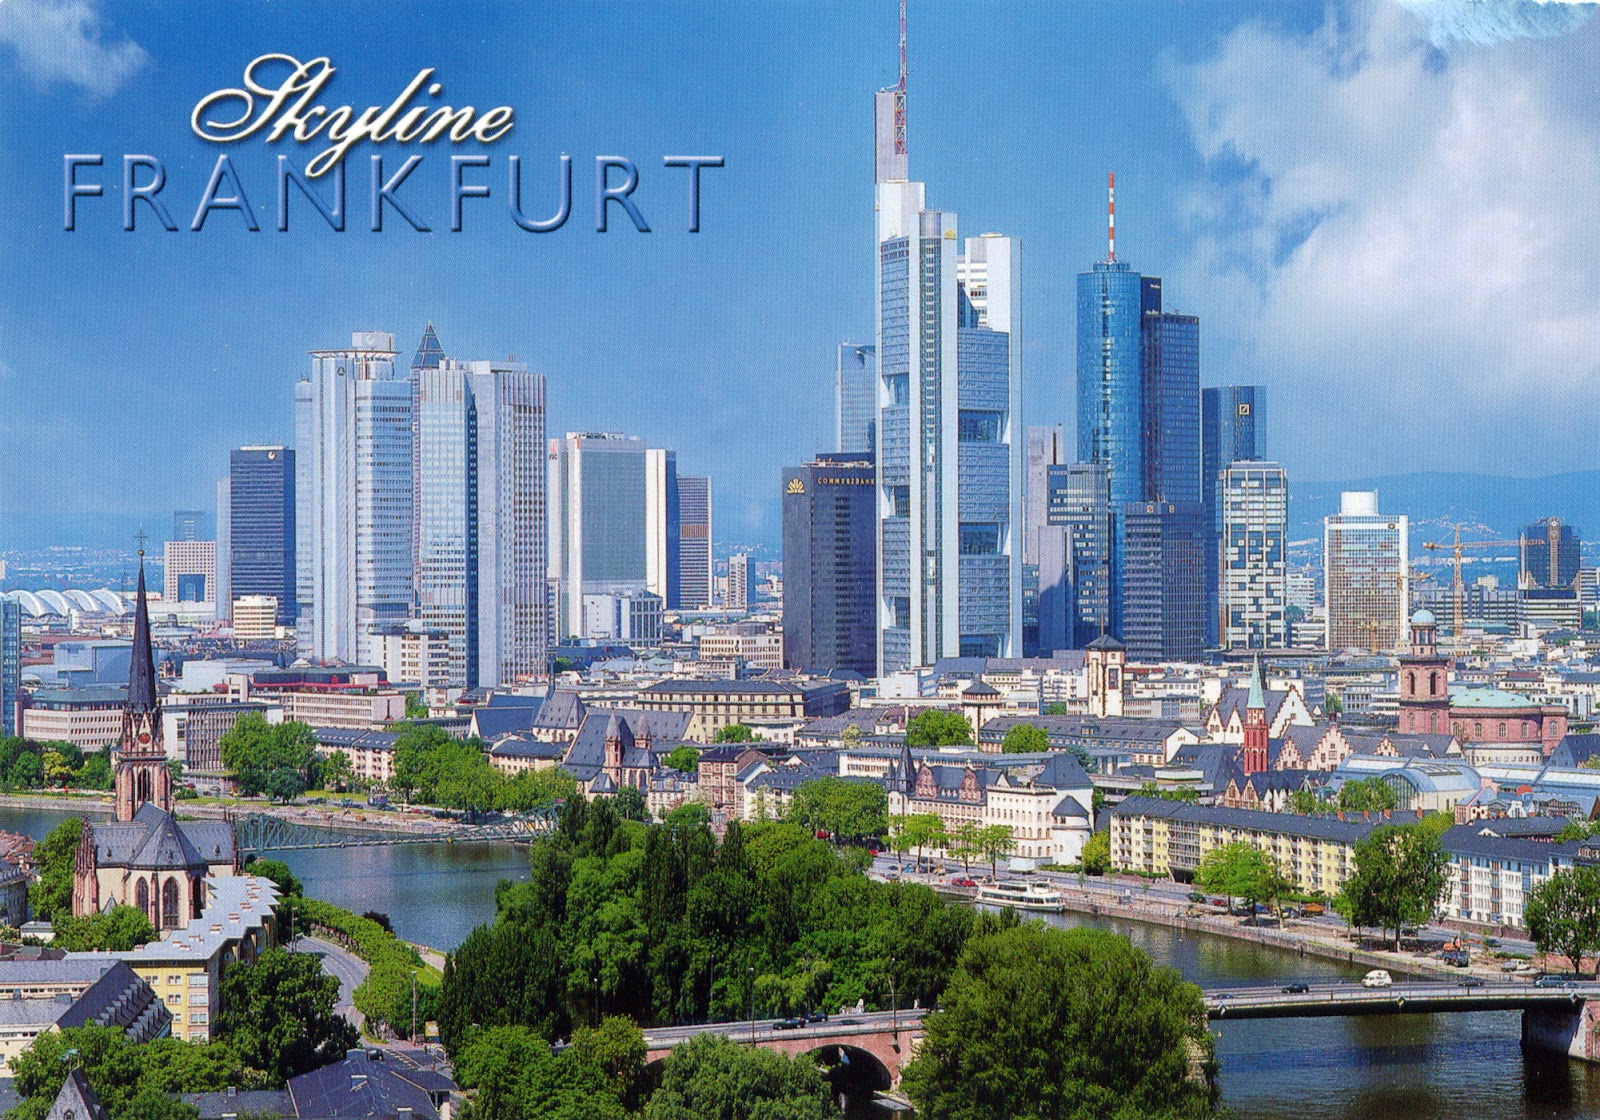 world come to my home 0410 0413 1368 2637 germany hesse skyline of frankfurt am main. Black Bedroom Furniture Sets. Home Design Ideas